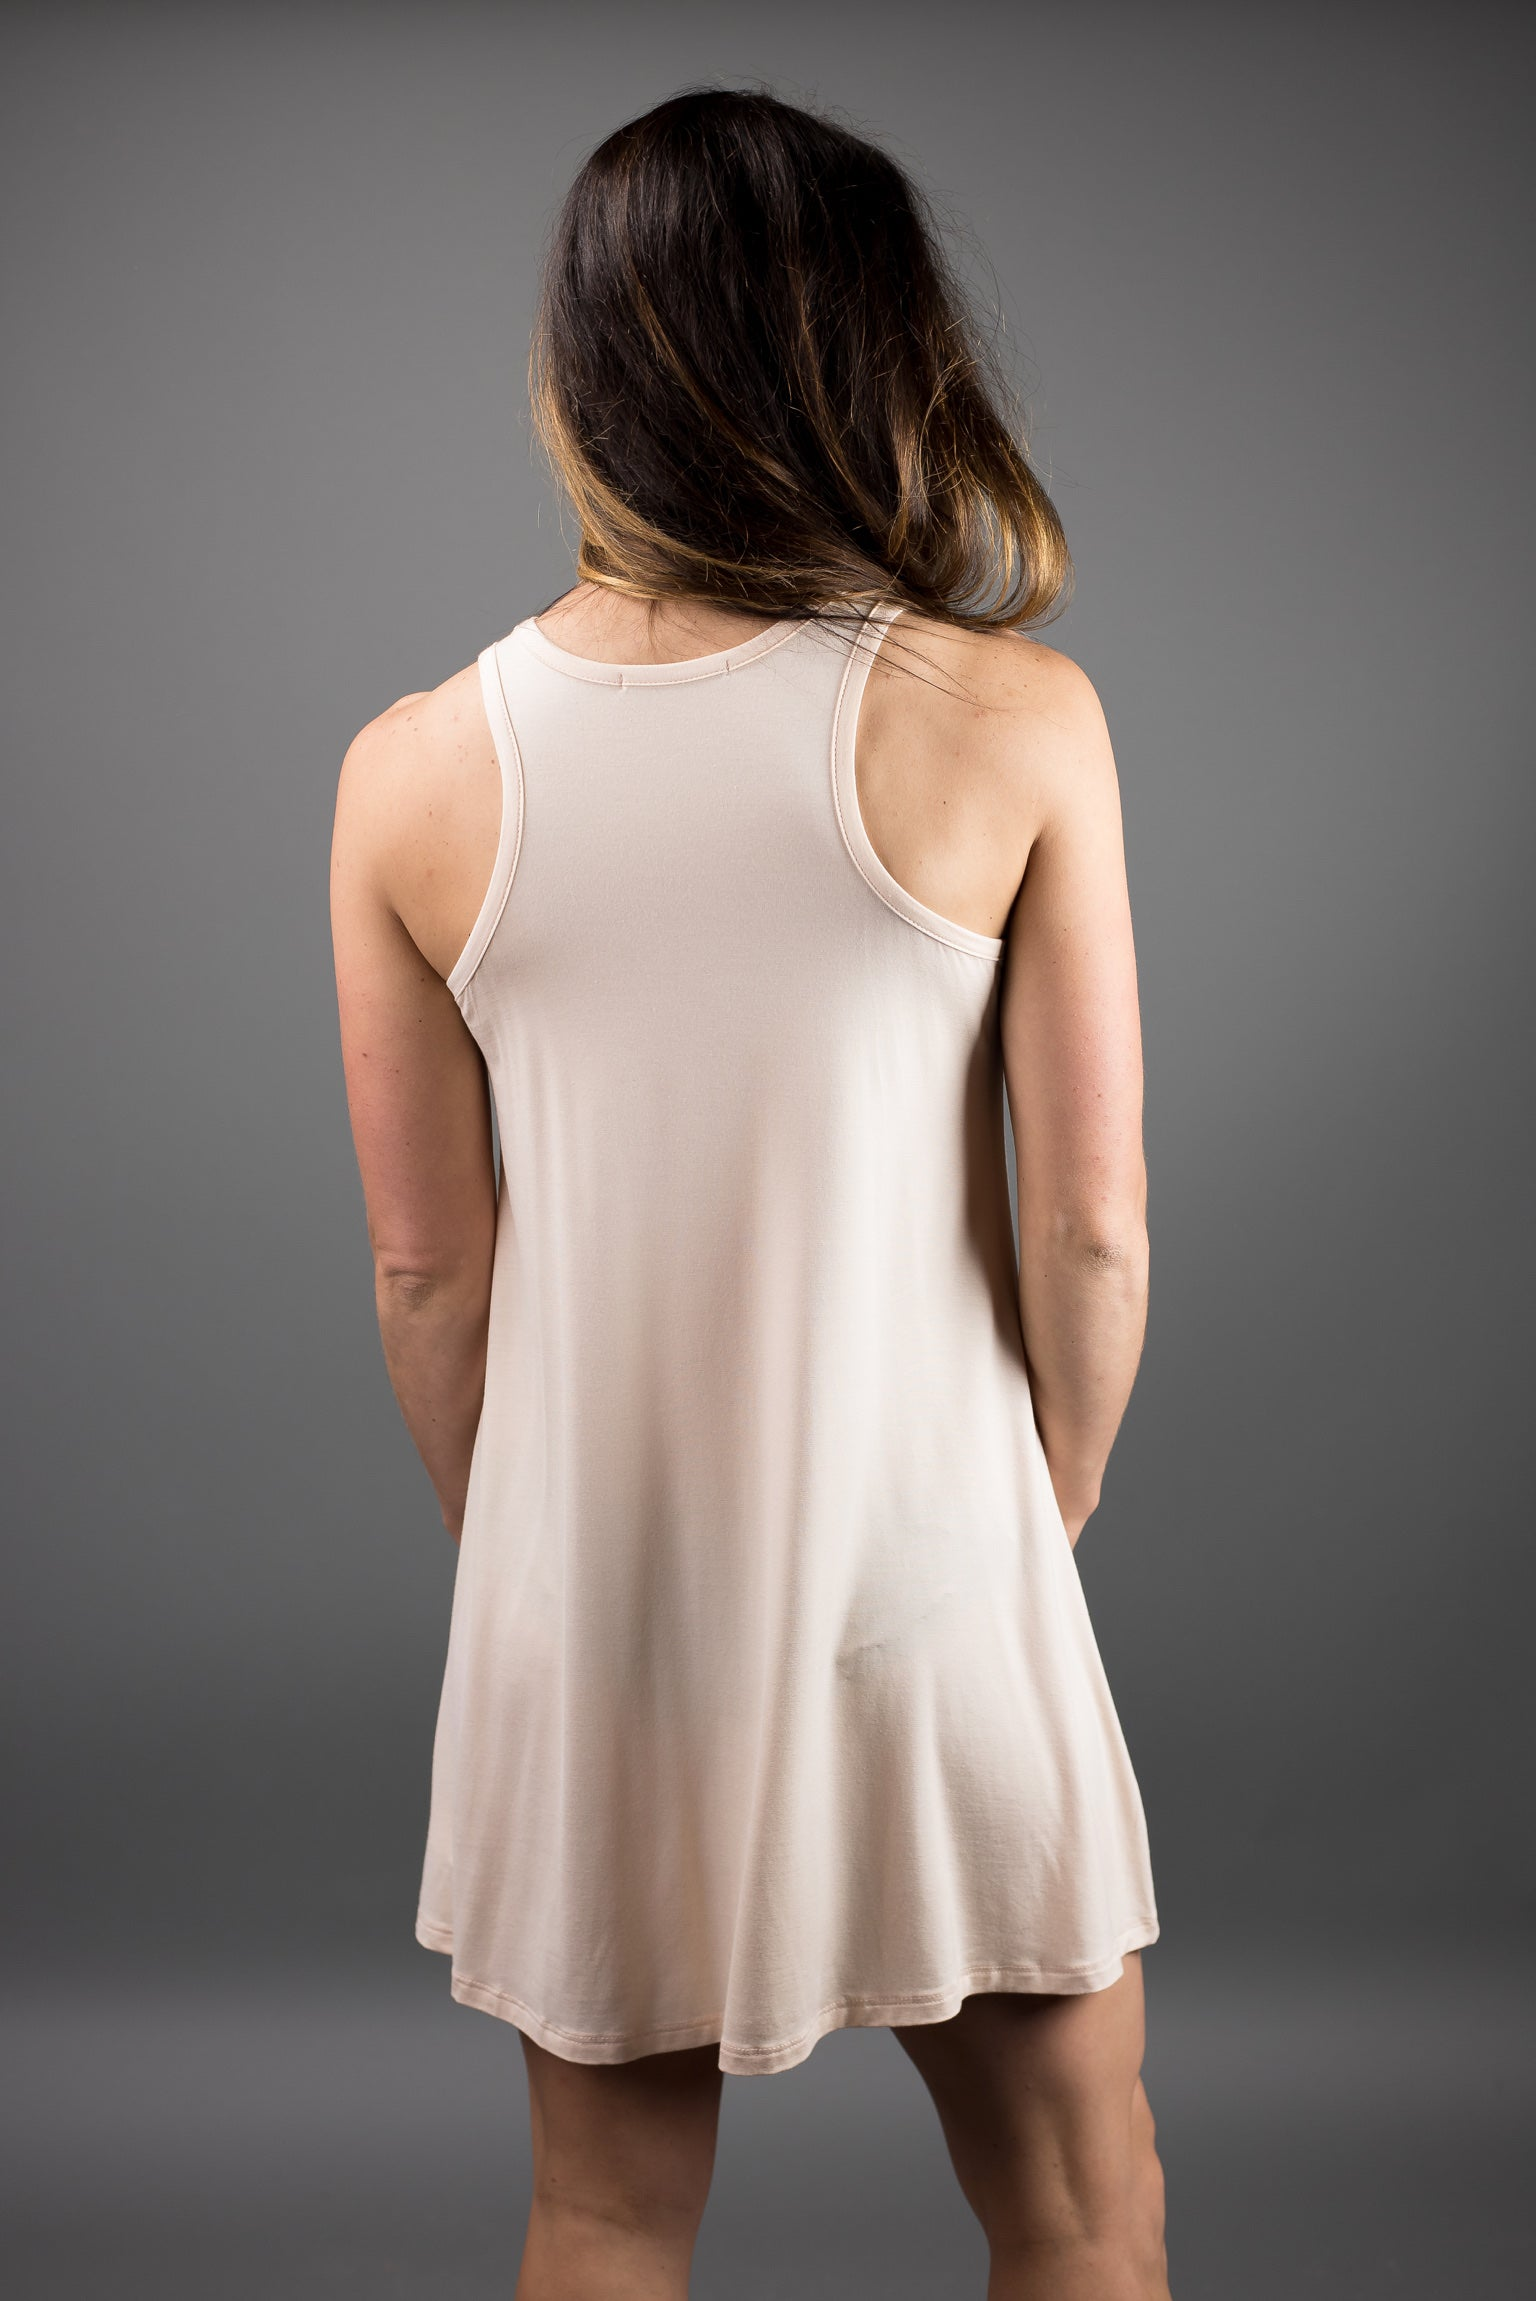 Miles From Nowhere Tank Dress- Light Peach